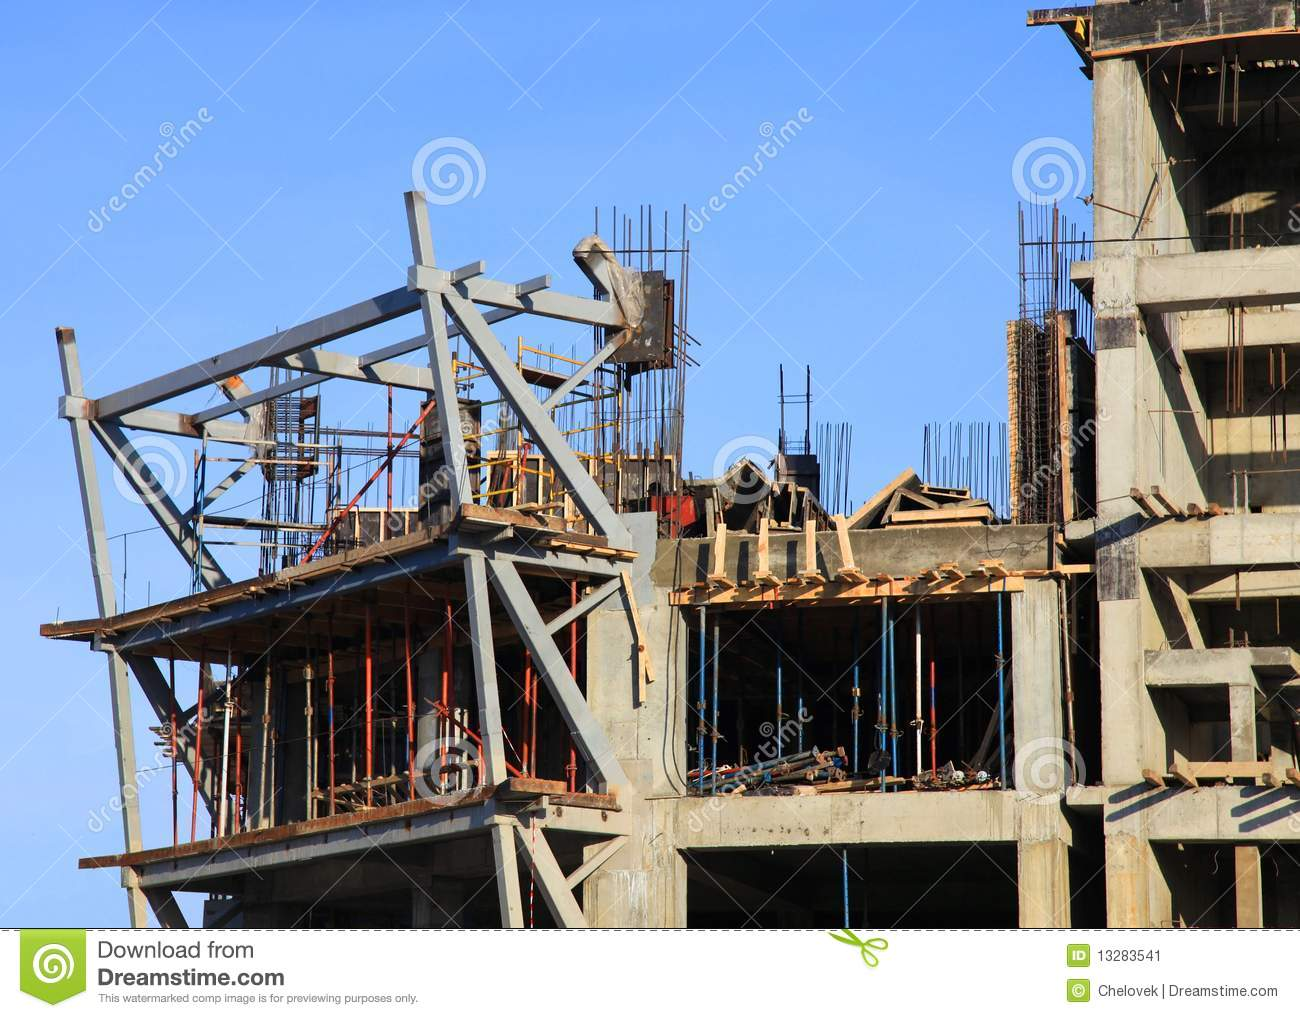 Building Under Construction Stock Image - Image of europe ...